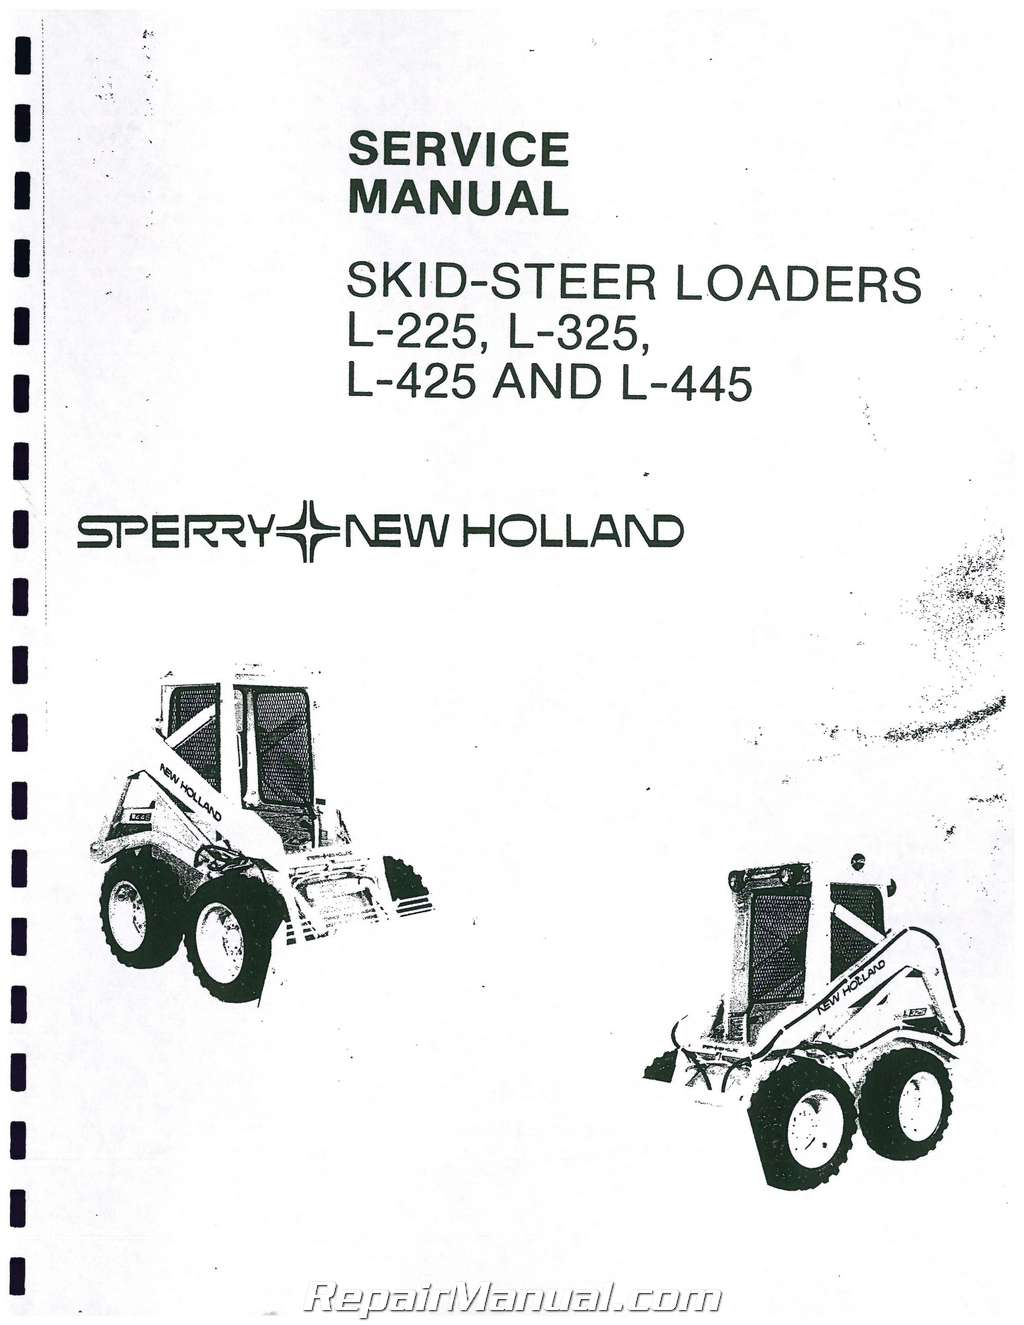 Details about Ford New Holland L225 Skid Steer Service Manual on